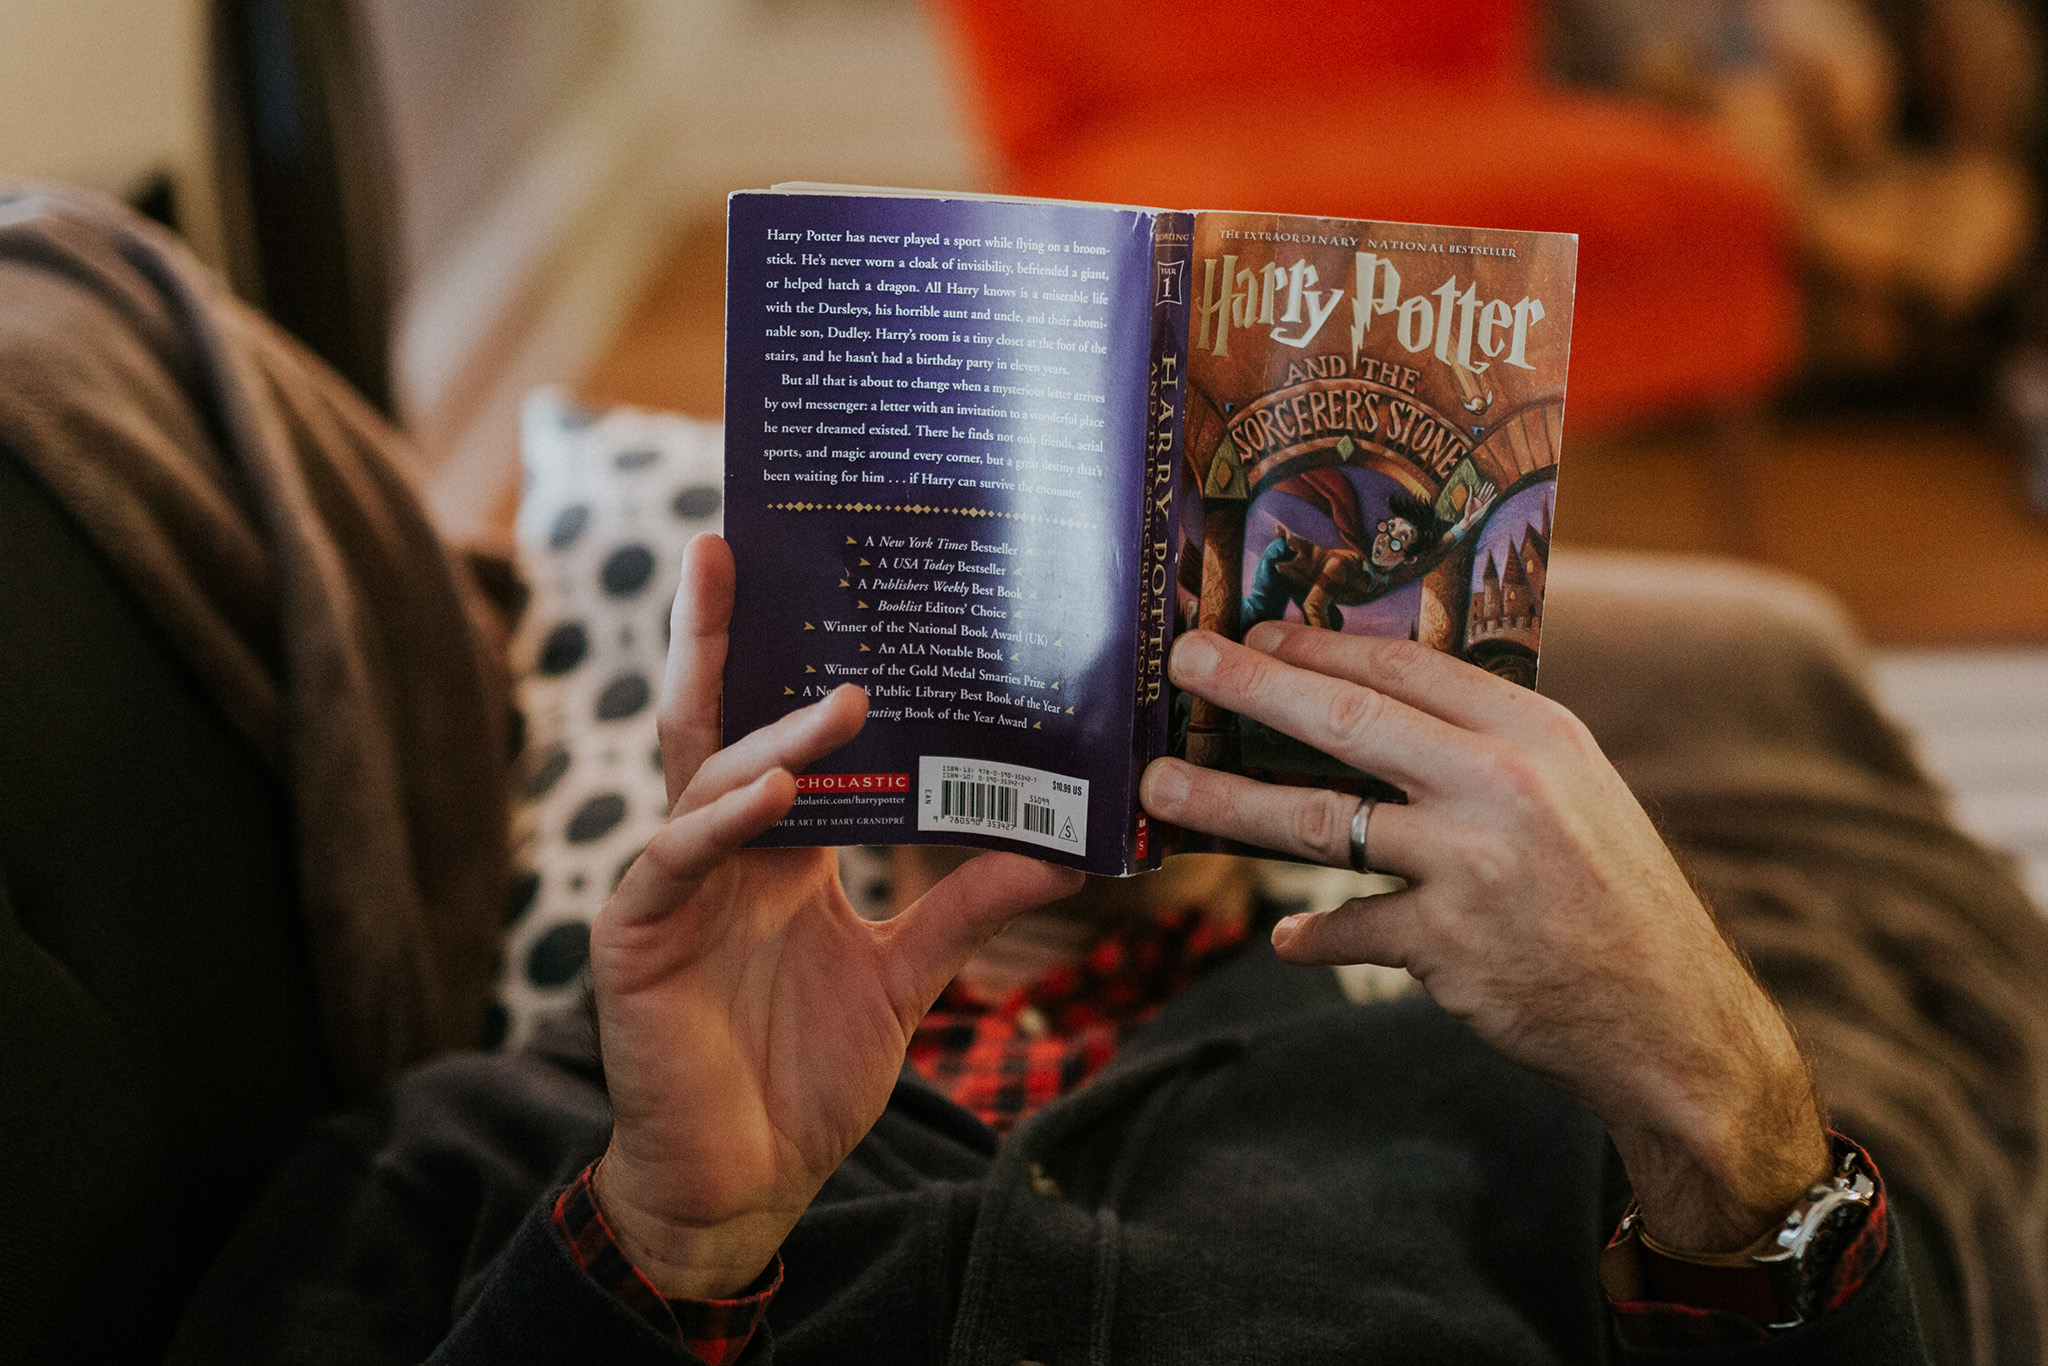 November 12: It only took 2.5 years to get Ty to read Harry Potter.